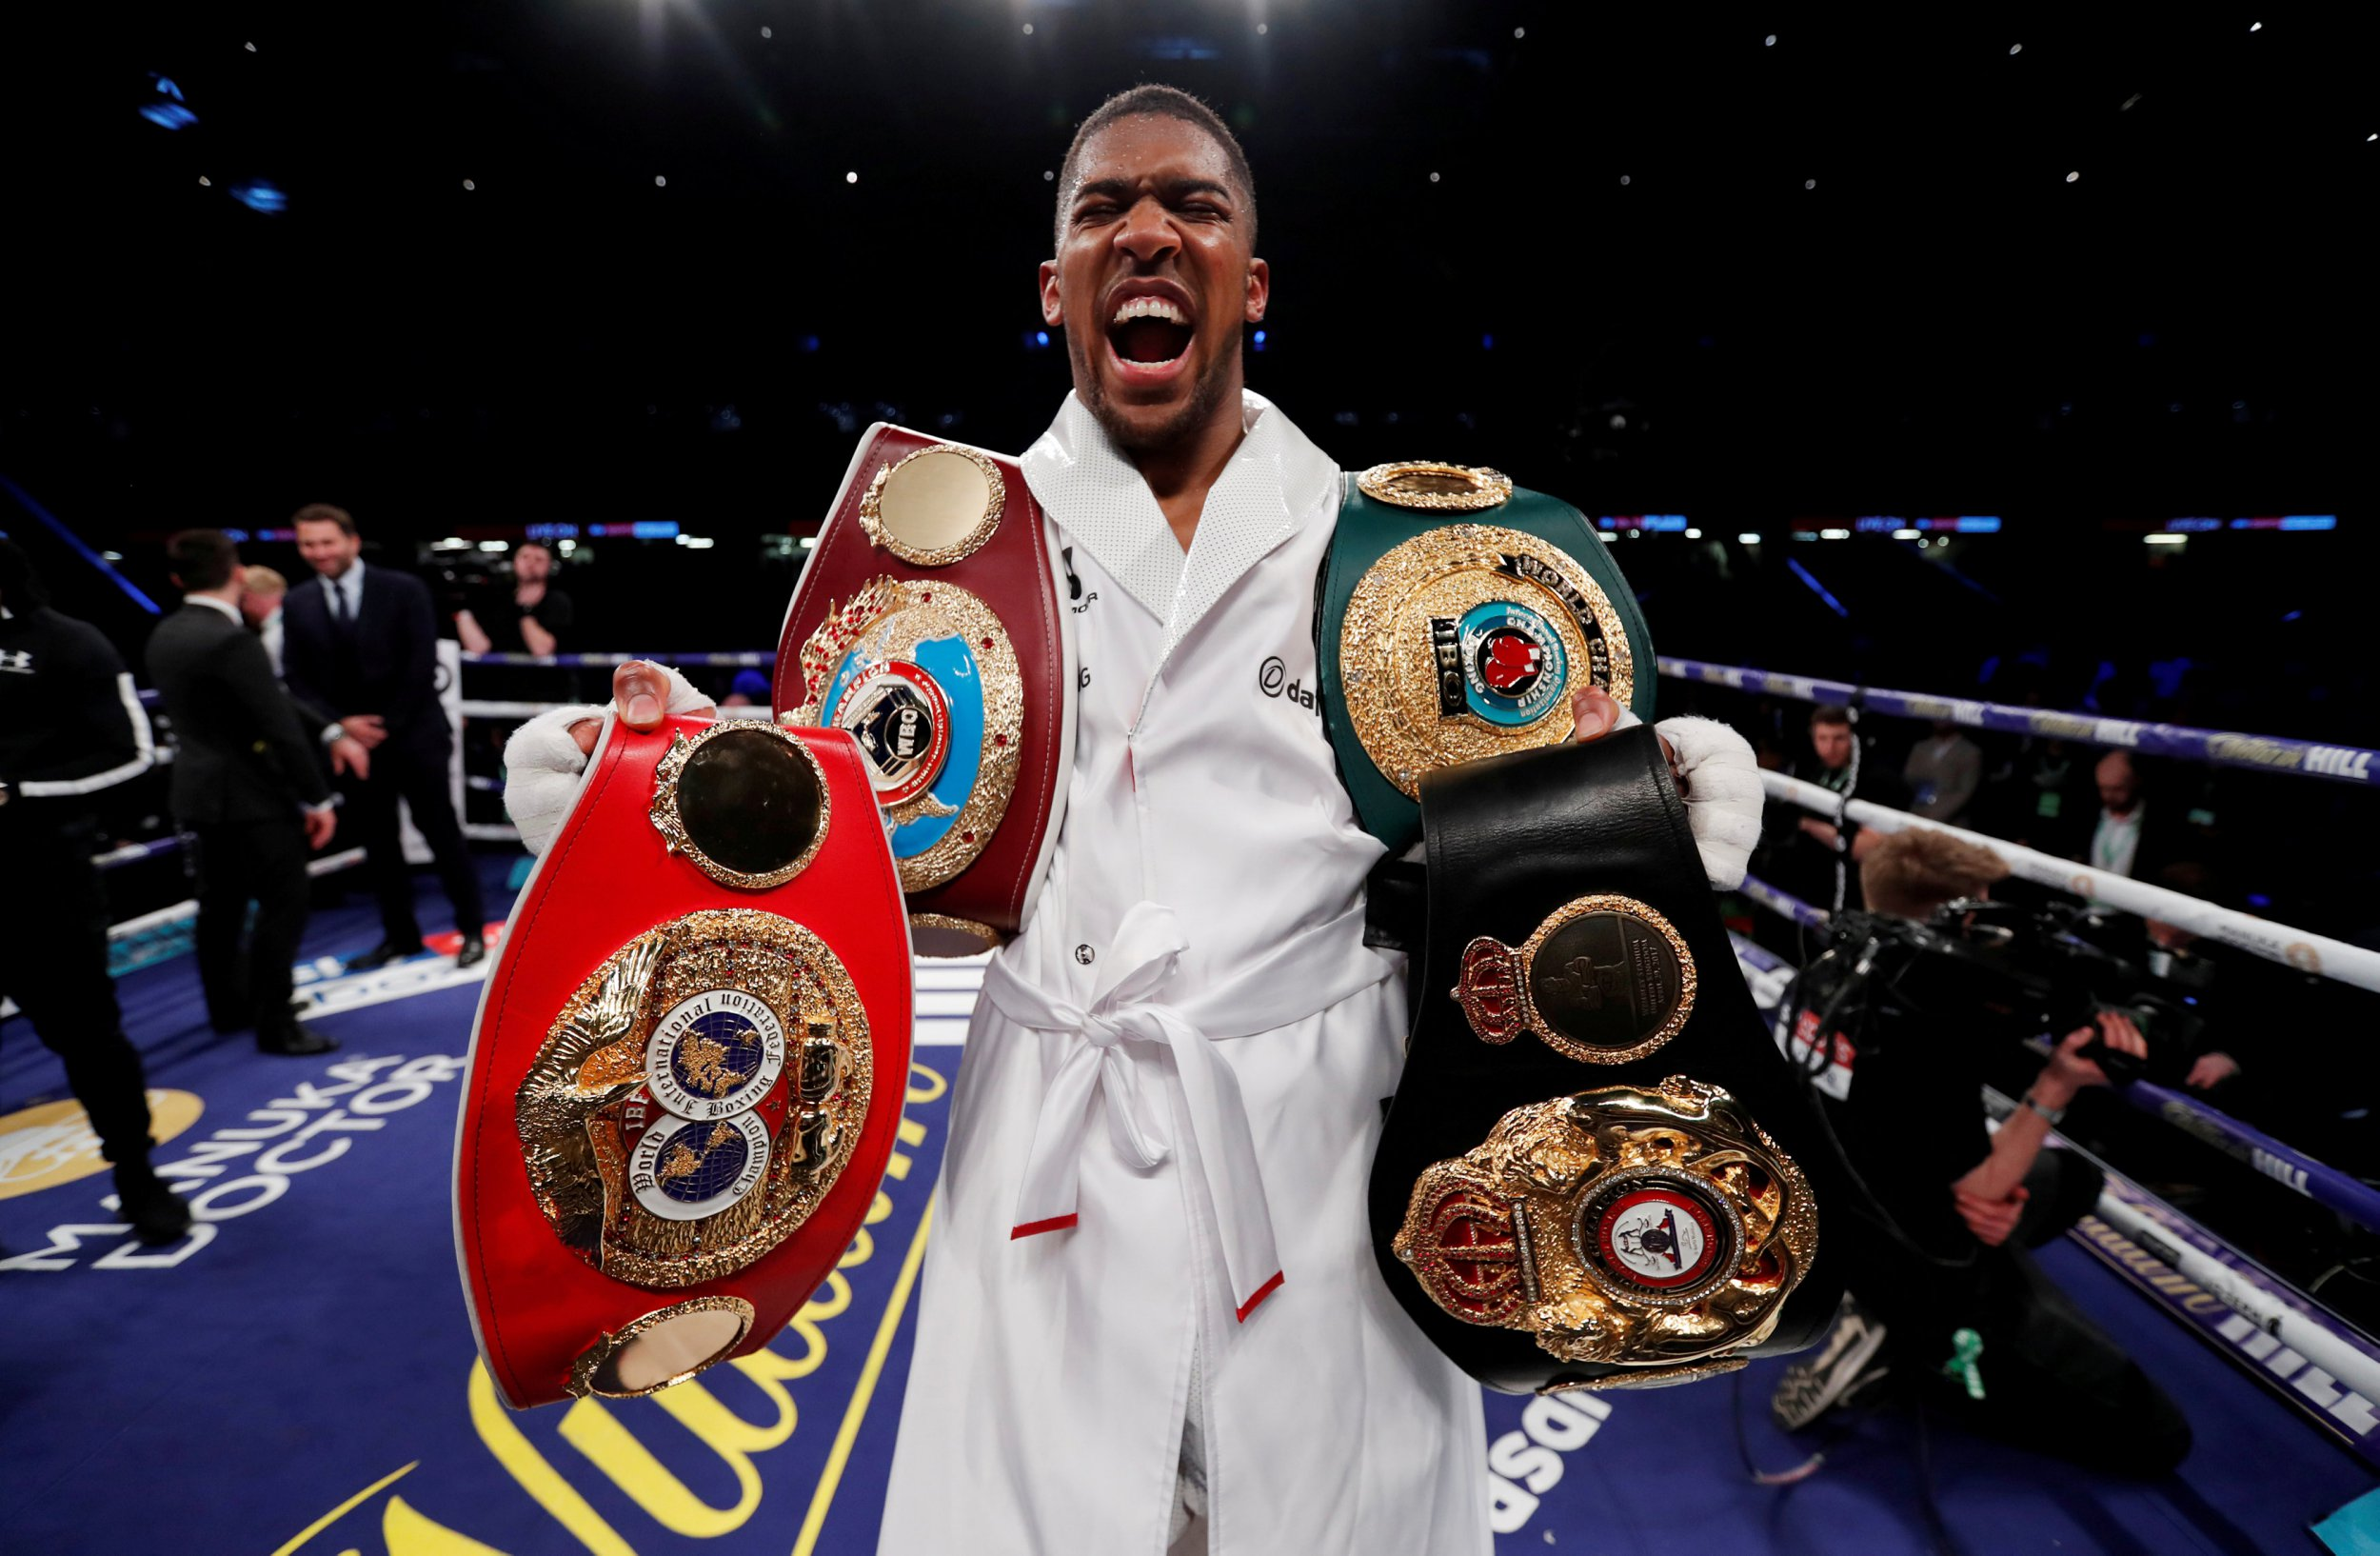 Boxing - Anthony Joshua vs Joseph Parker - World Heavyweight Title Unification Fight - Principality Stadium, Cardiff, Britain - March 31, 2018 Anthony Joshua celebrates with the belts after winning the fight Action Images via Reuters/Andrew Couldridge TPX IMAGES OF THE DAY